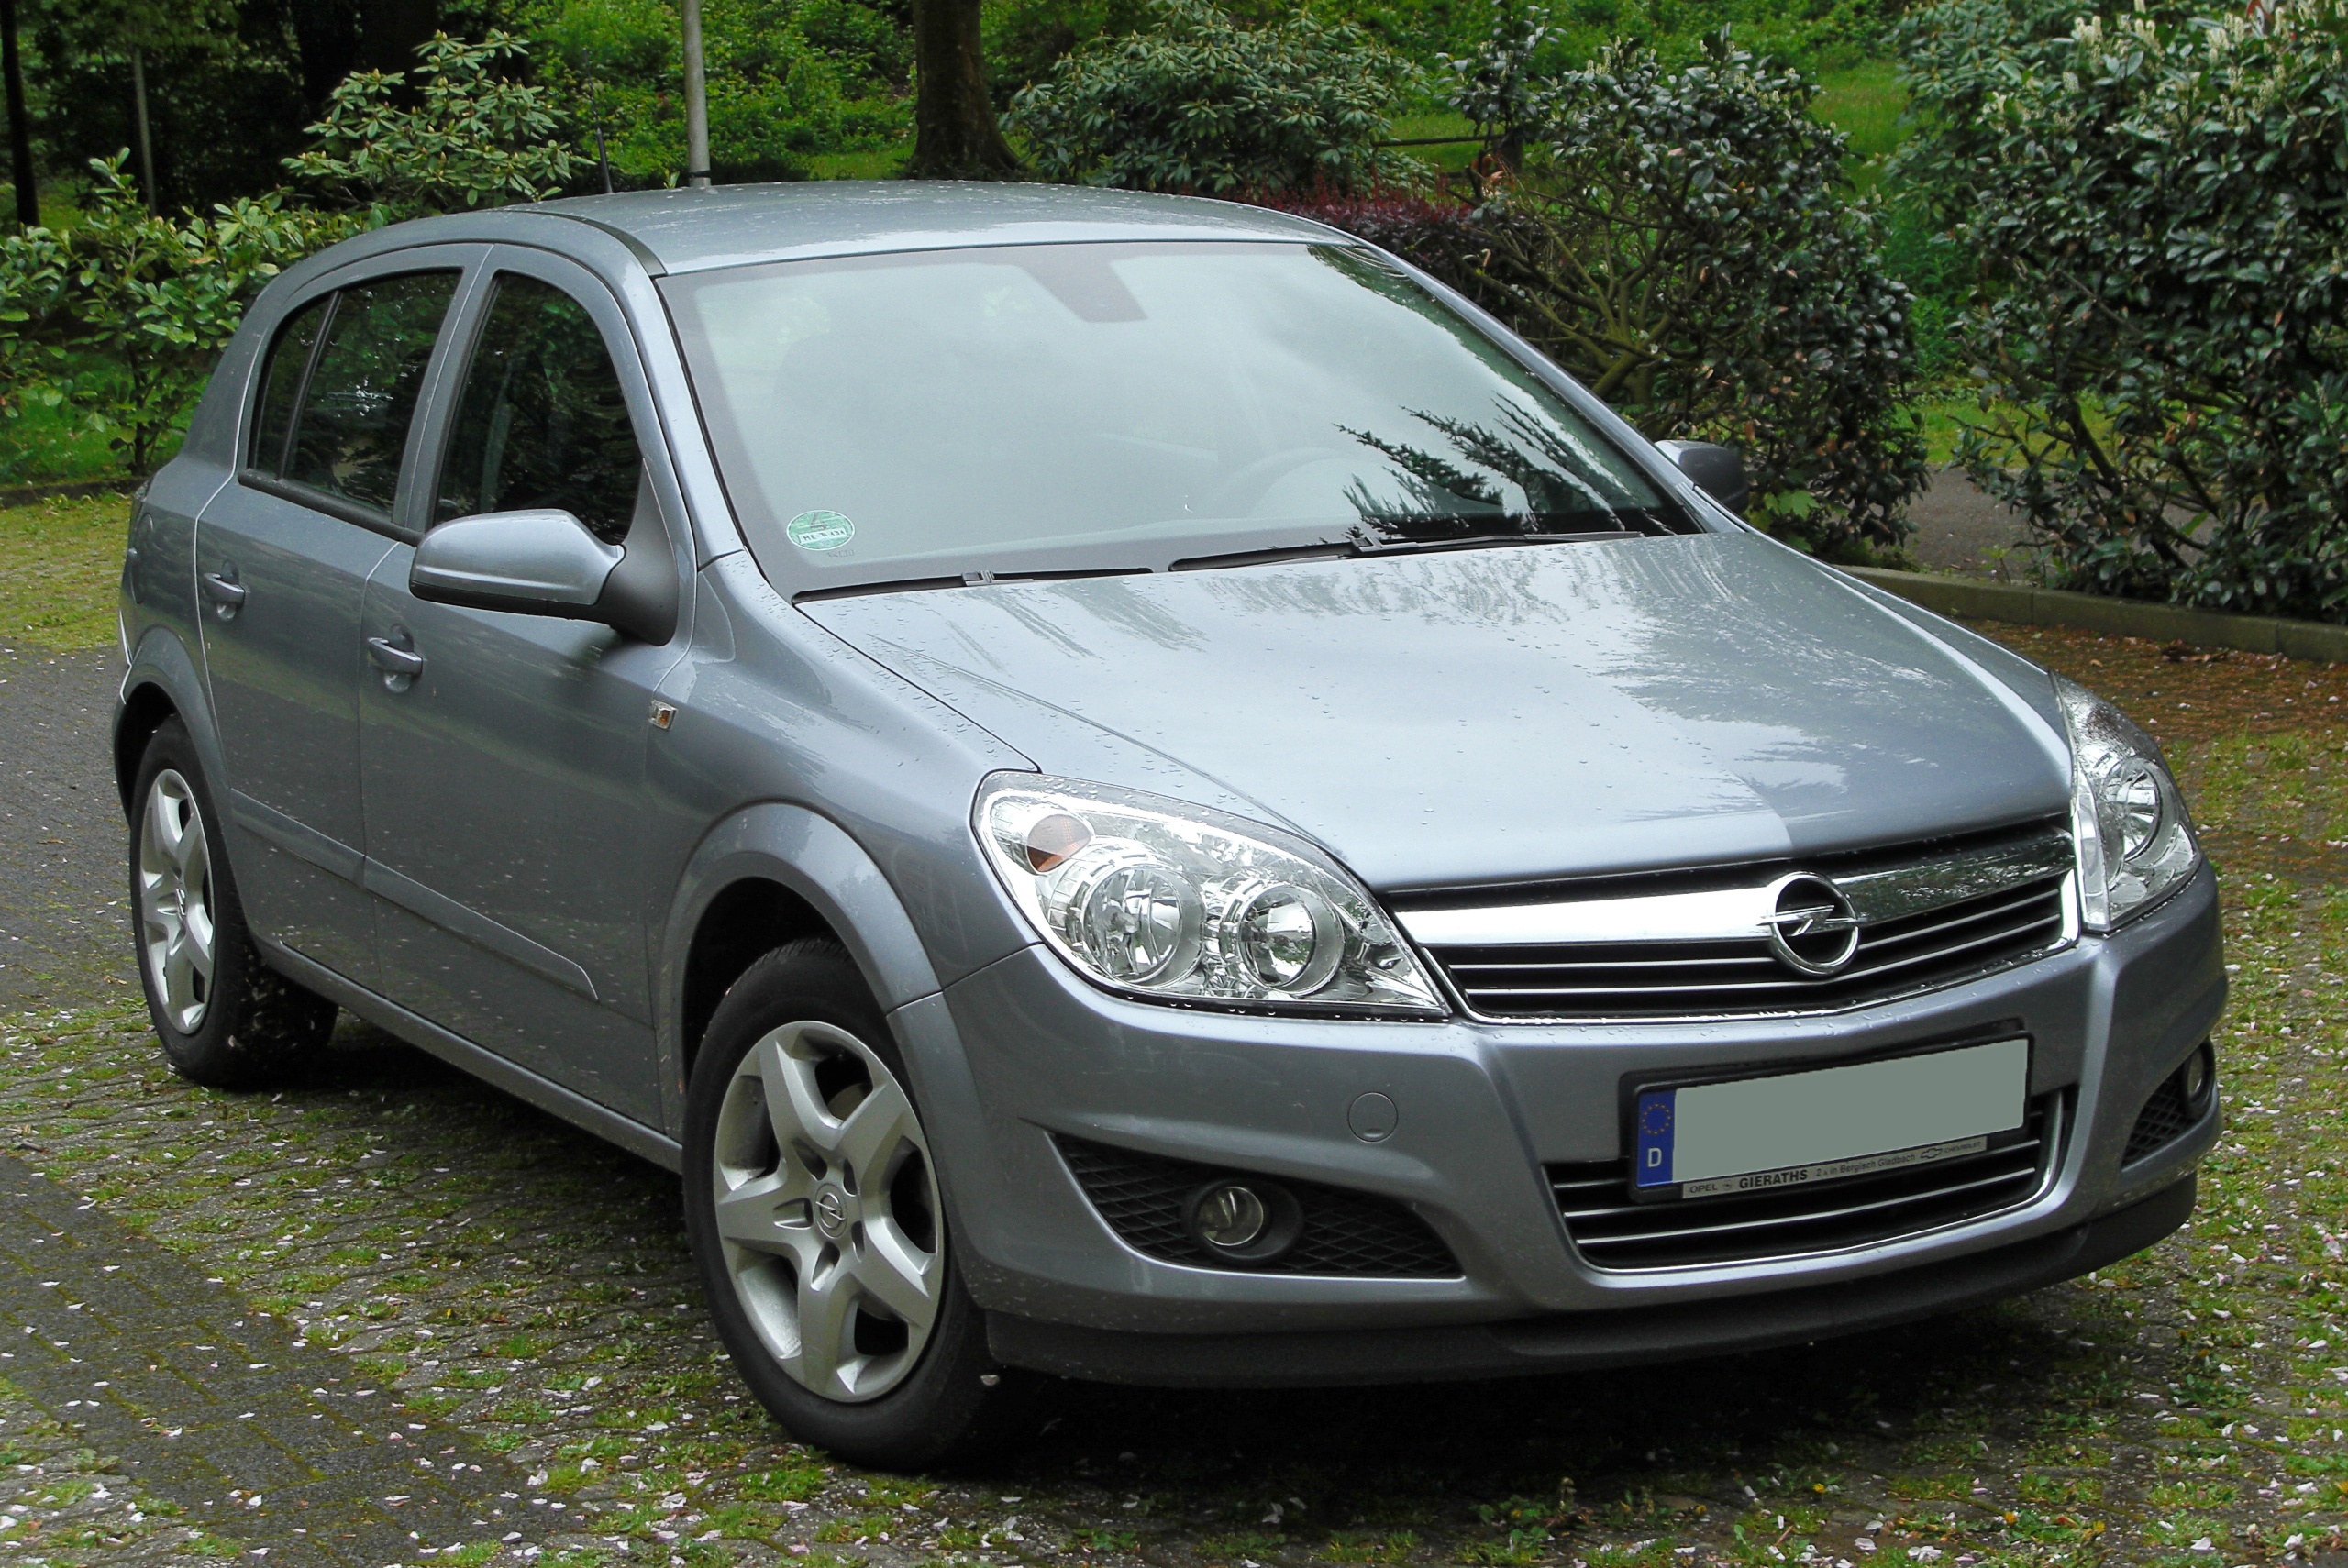 file opel astra h 1 6 facelift front wikimedia commons. Black Bedroom Furniture Sets. Home Design Ideas